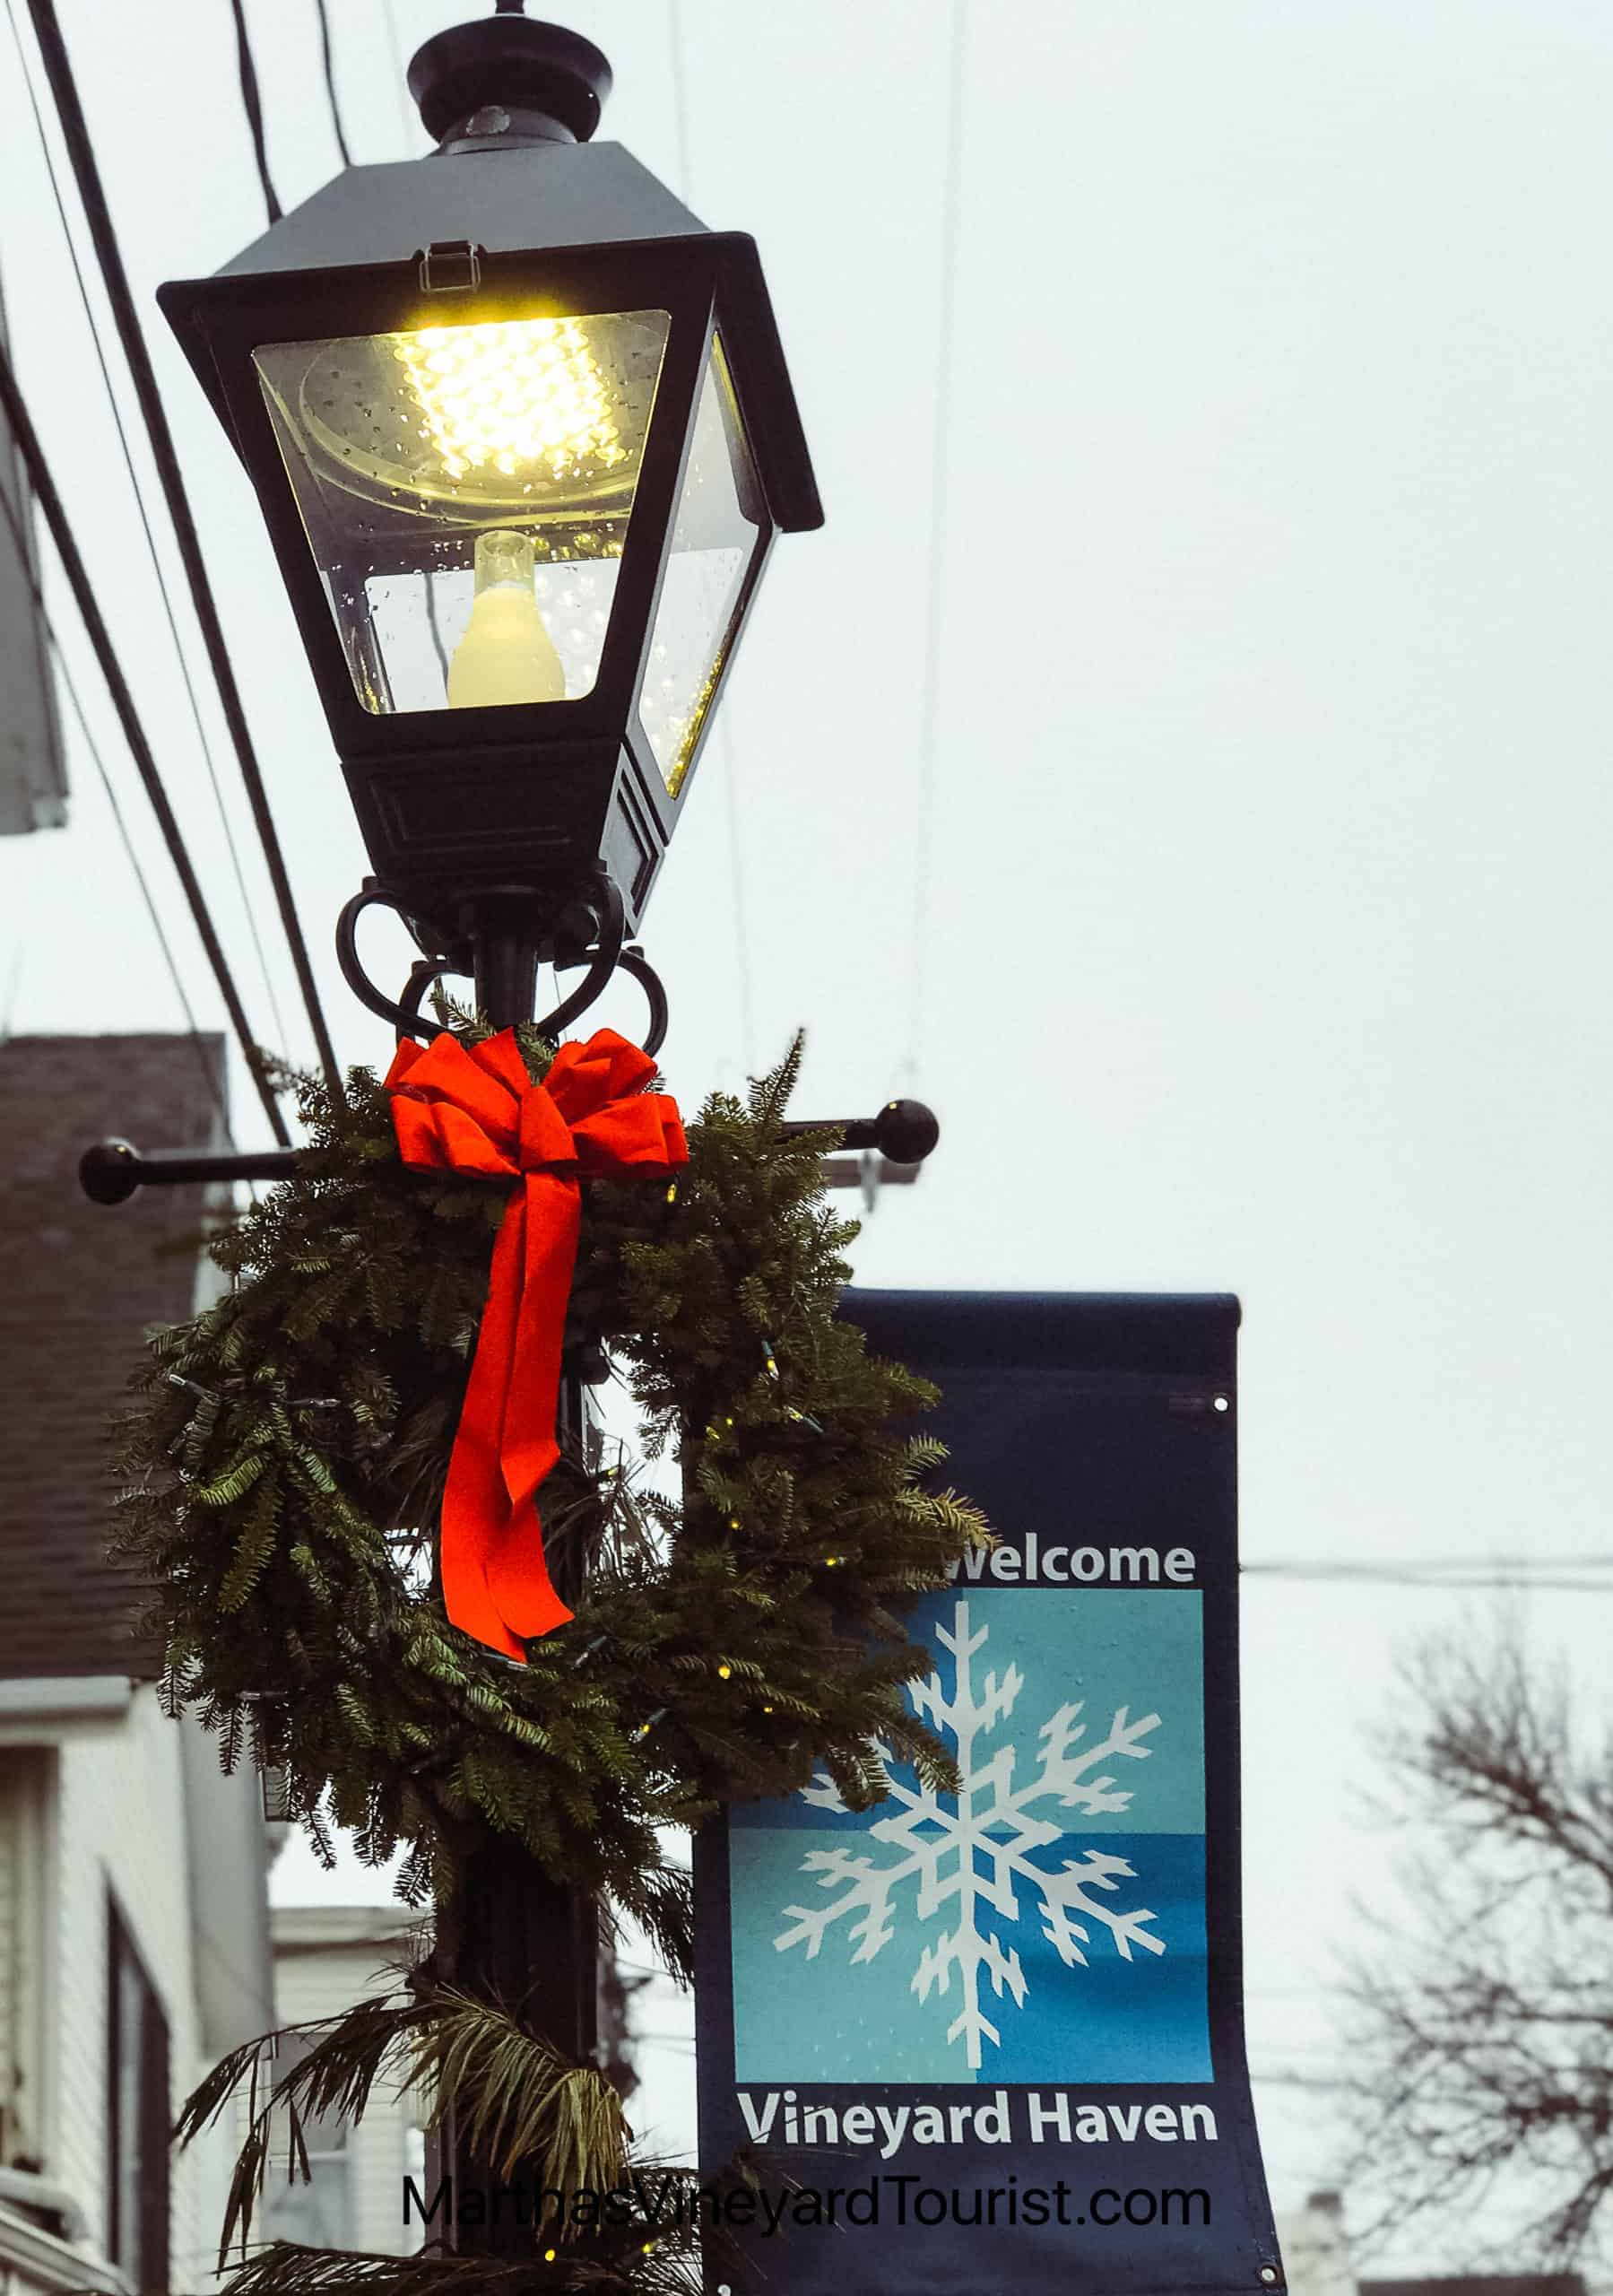 a Christmas wreath on a lamppost in Vineyard Haven